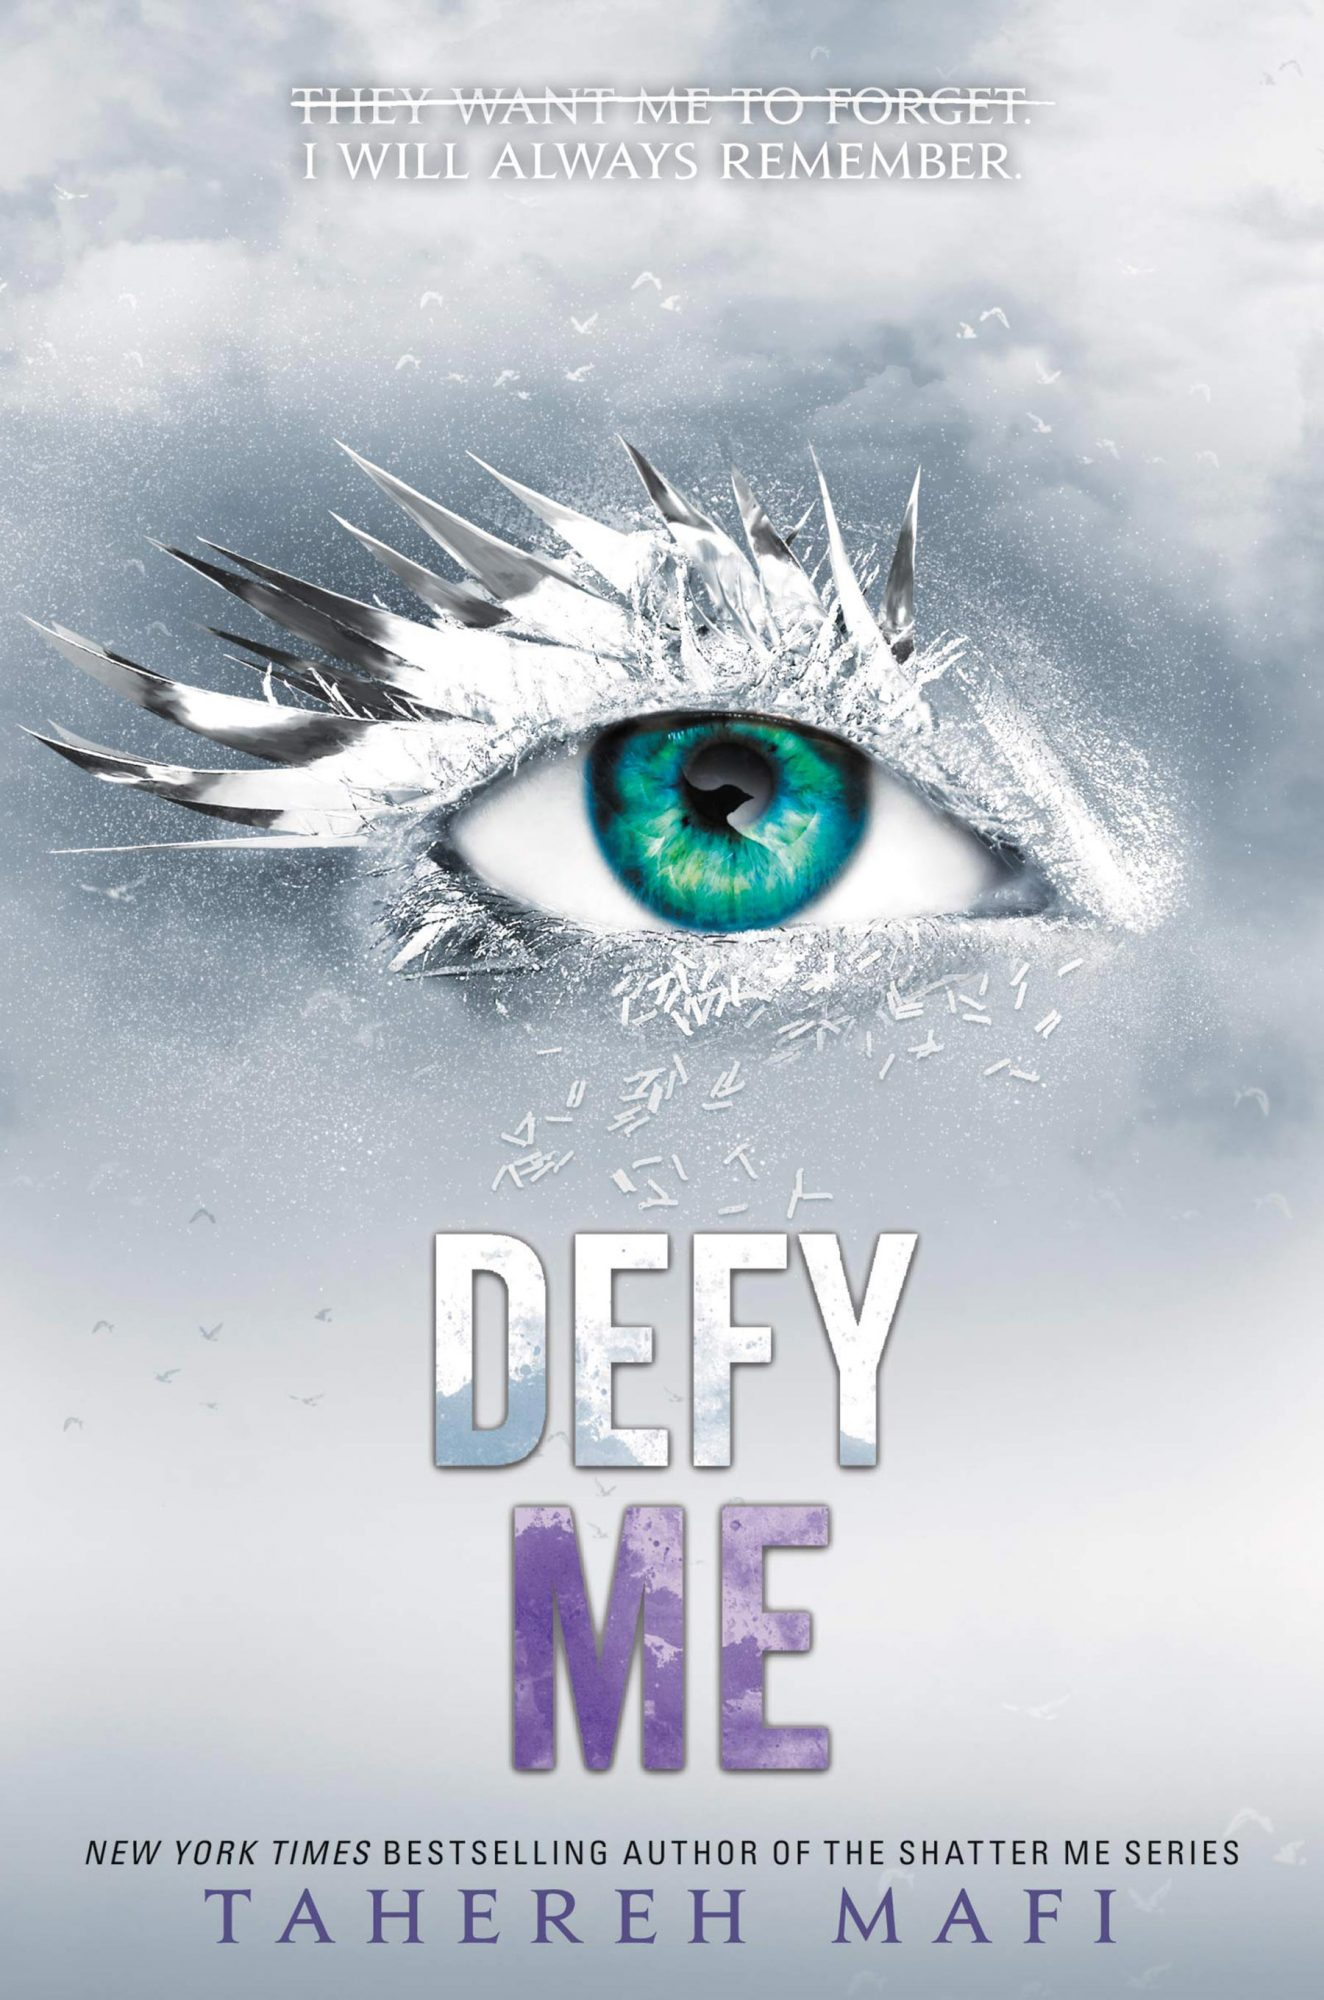 Defy Me (Shatter Me) by Tahereh Mafi Publisher: HarperCollins